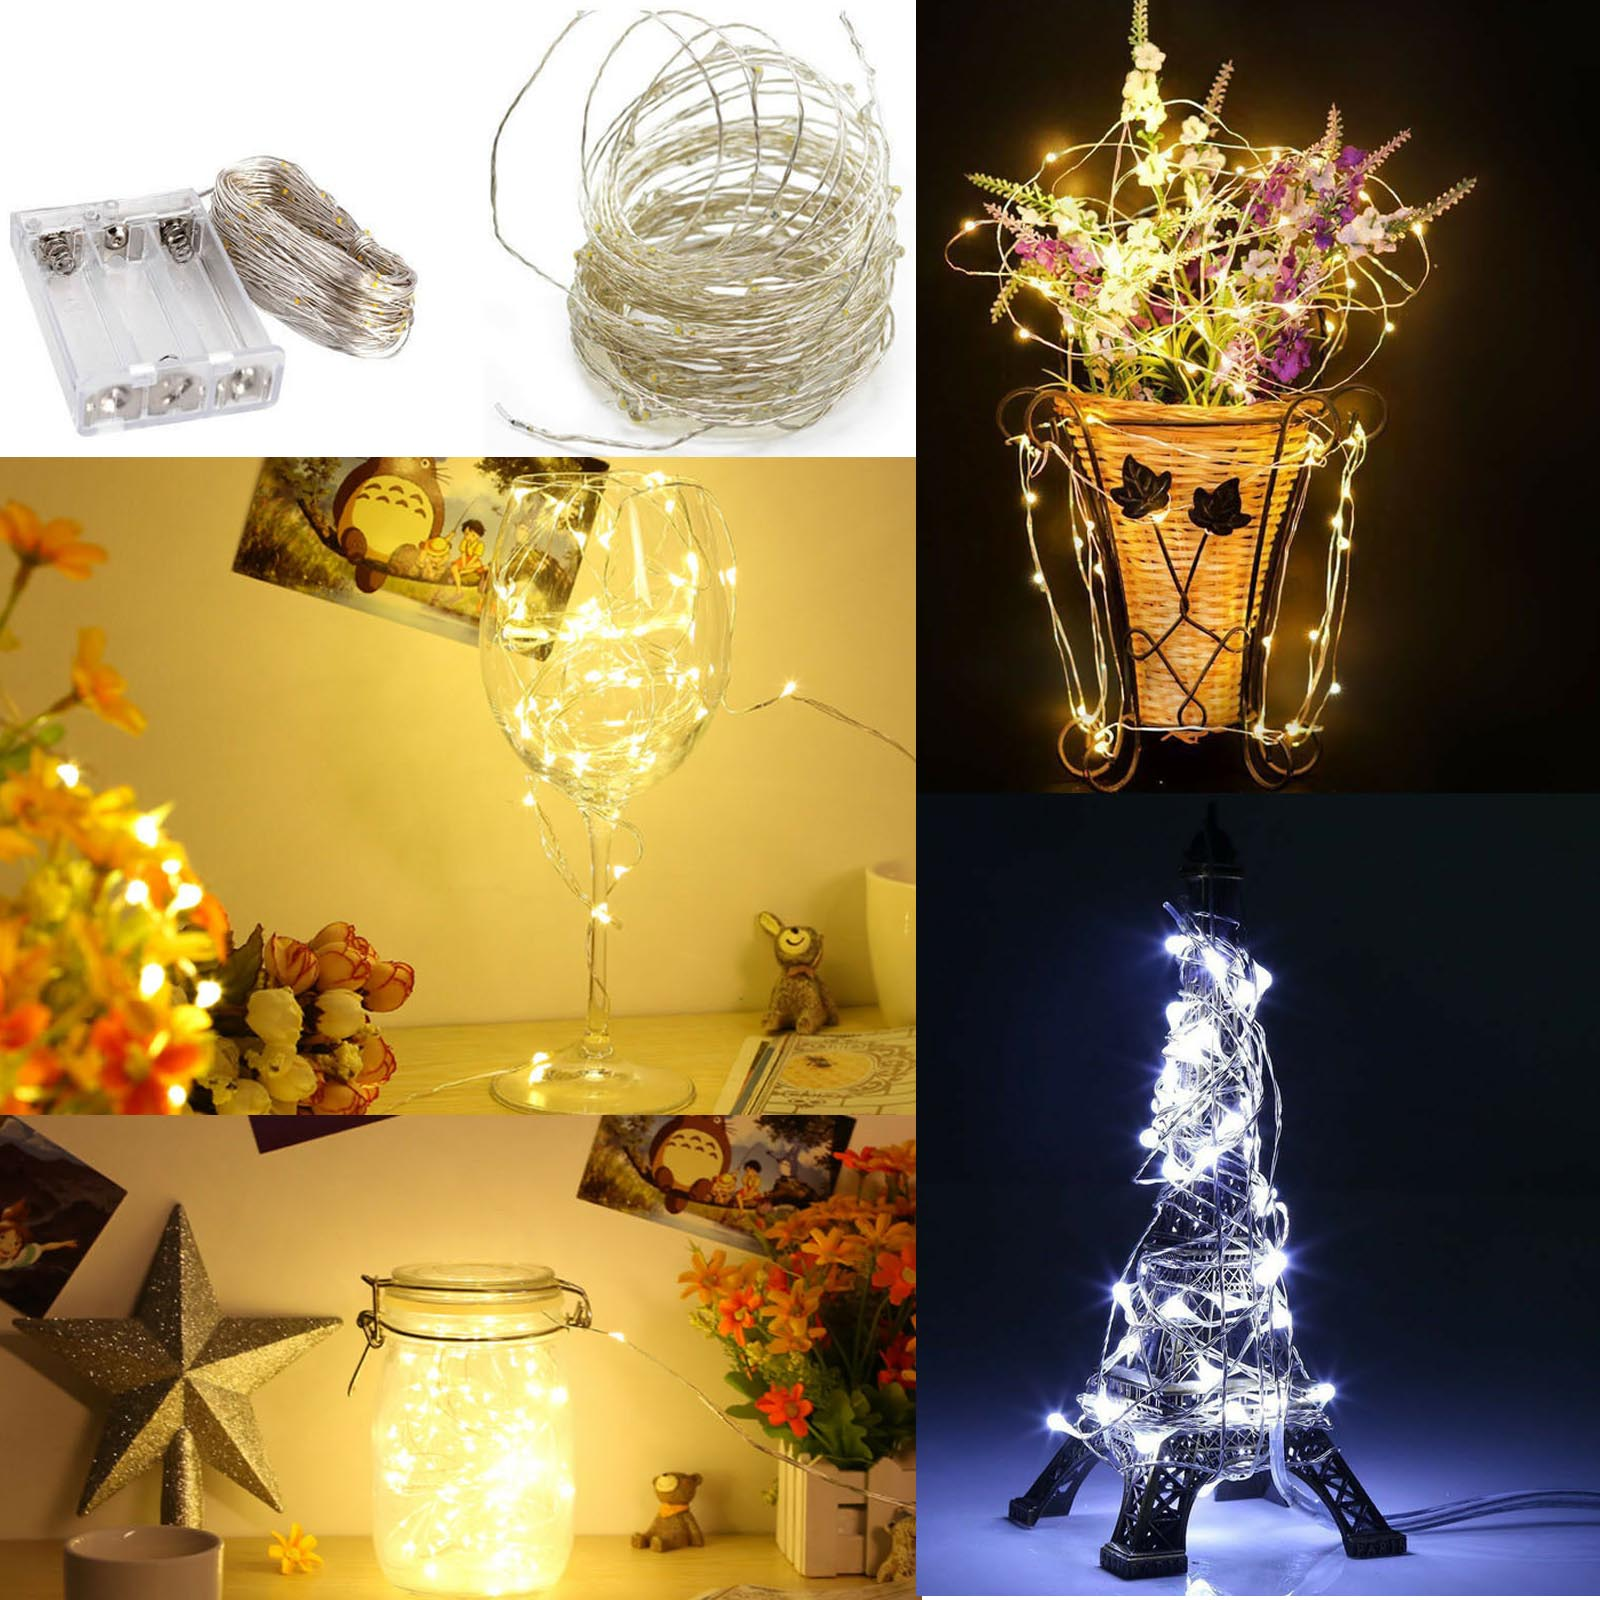 LED String Lights  1M 5M 10 50LEDS Sliver Cooper Wire Garland Home Xmas Wedding Party Decor Powered By 3*AA Battery Fairy Light